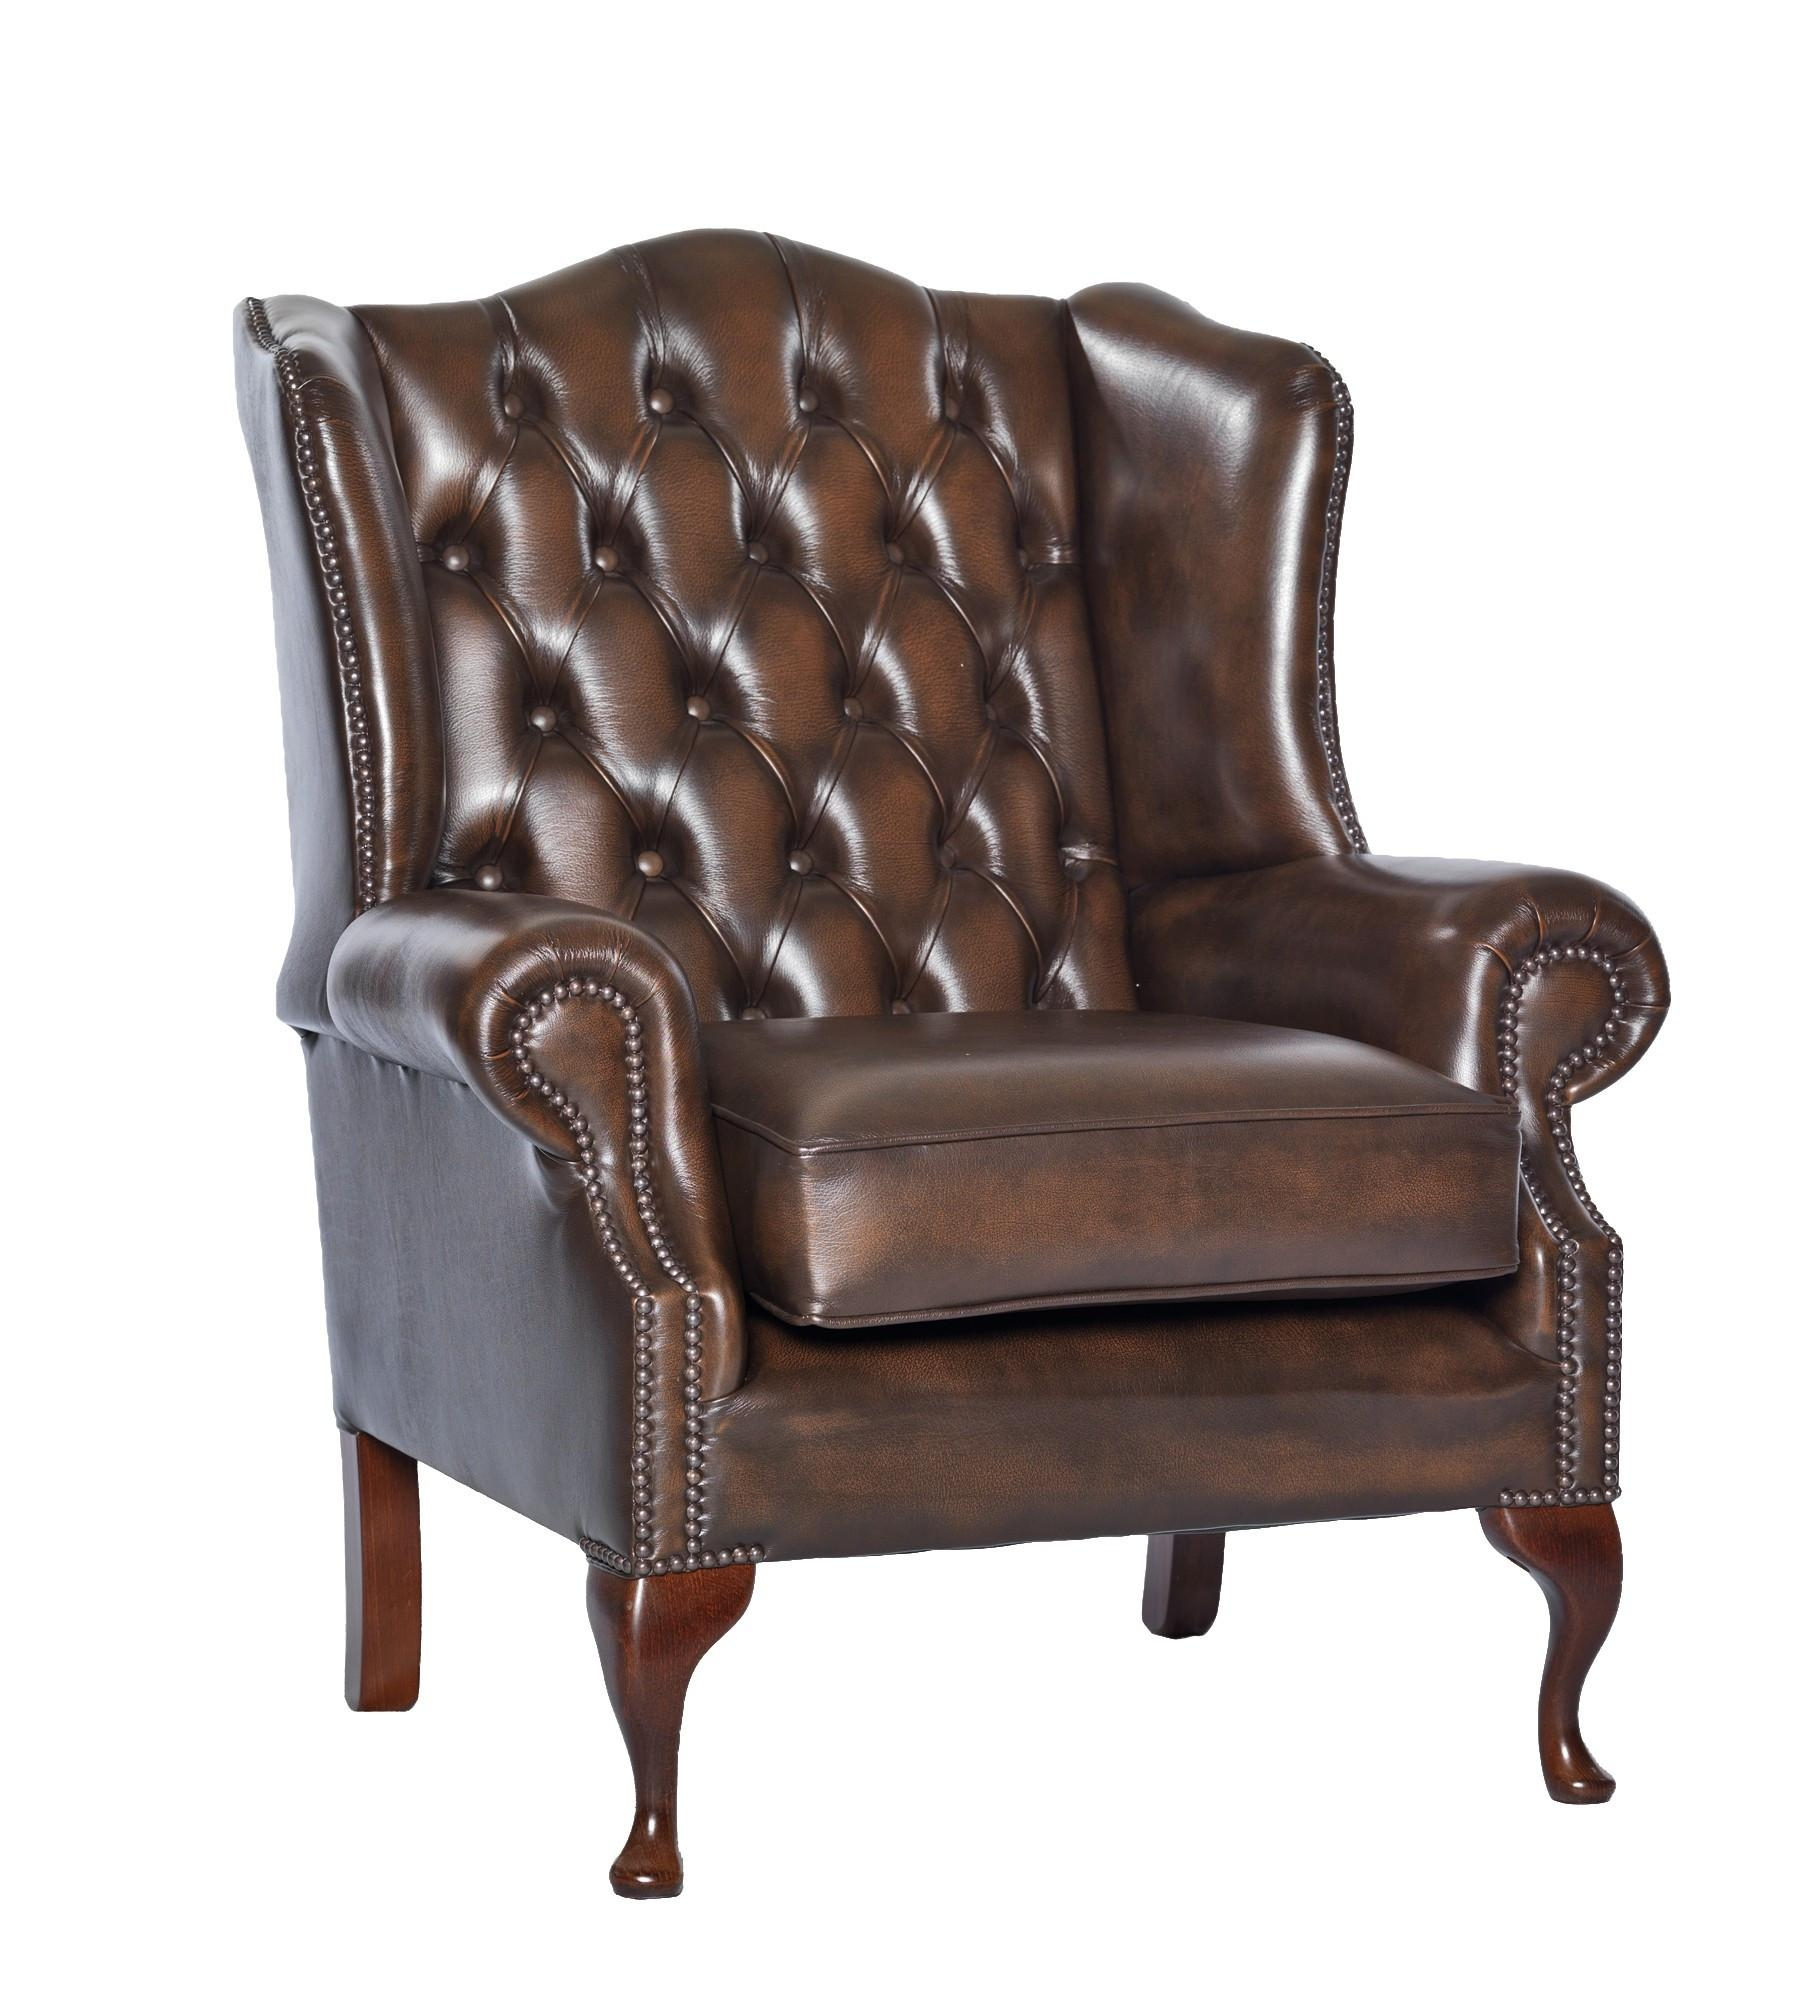 Queen Anne Leather Chesterfield Sofa Or Chair - Leather Sofas And with Chesterfield Sofa and Chairs